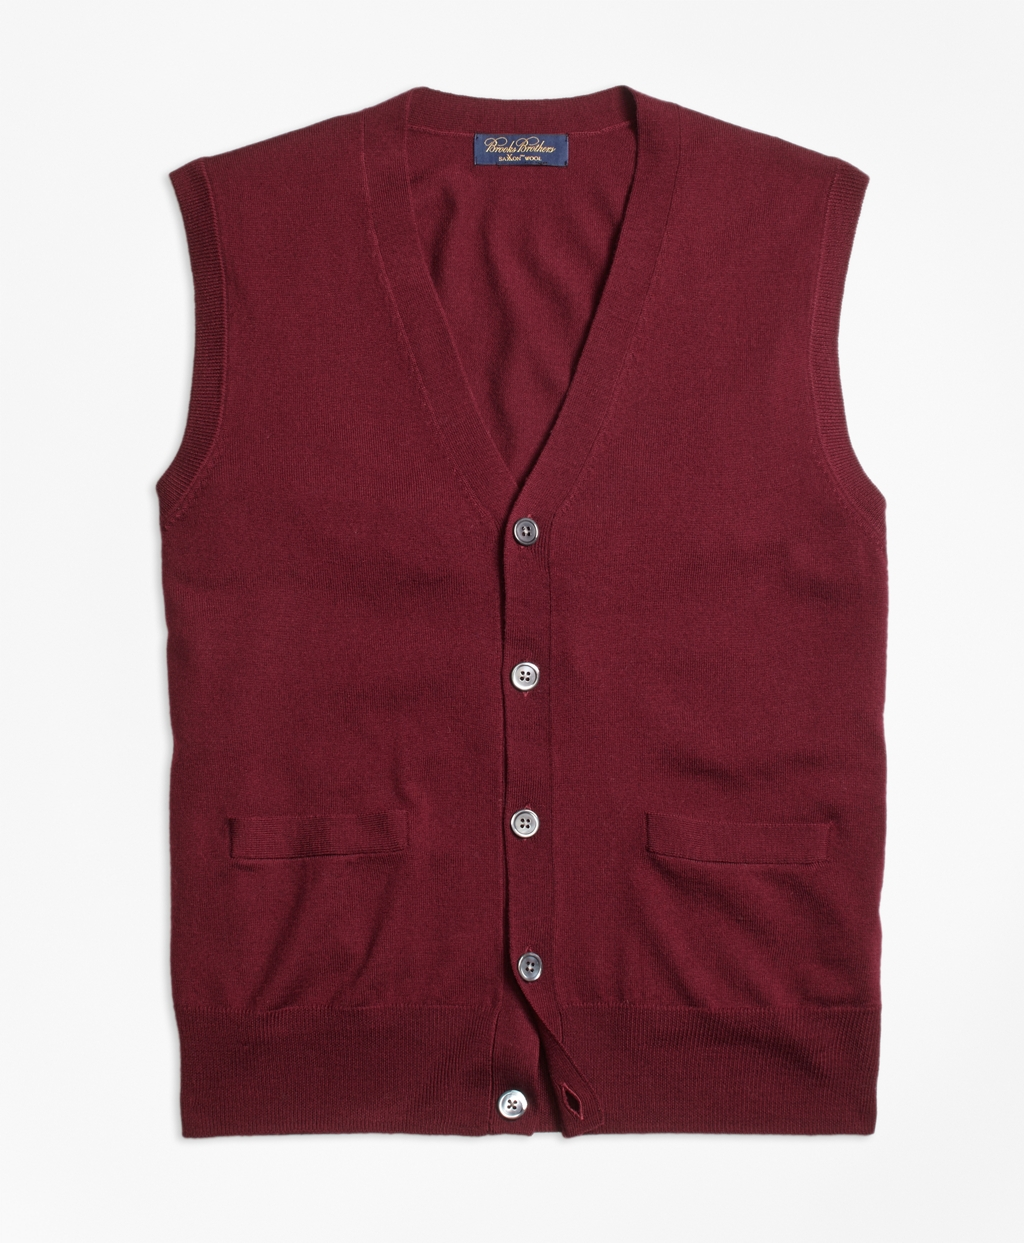 Brooks brothers Saxxon Wool Button-front Sweater Vest in Red for ...